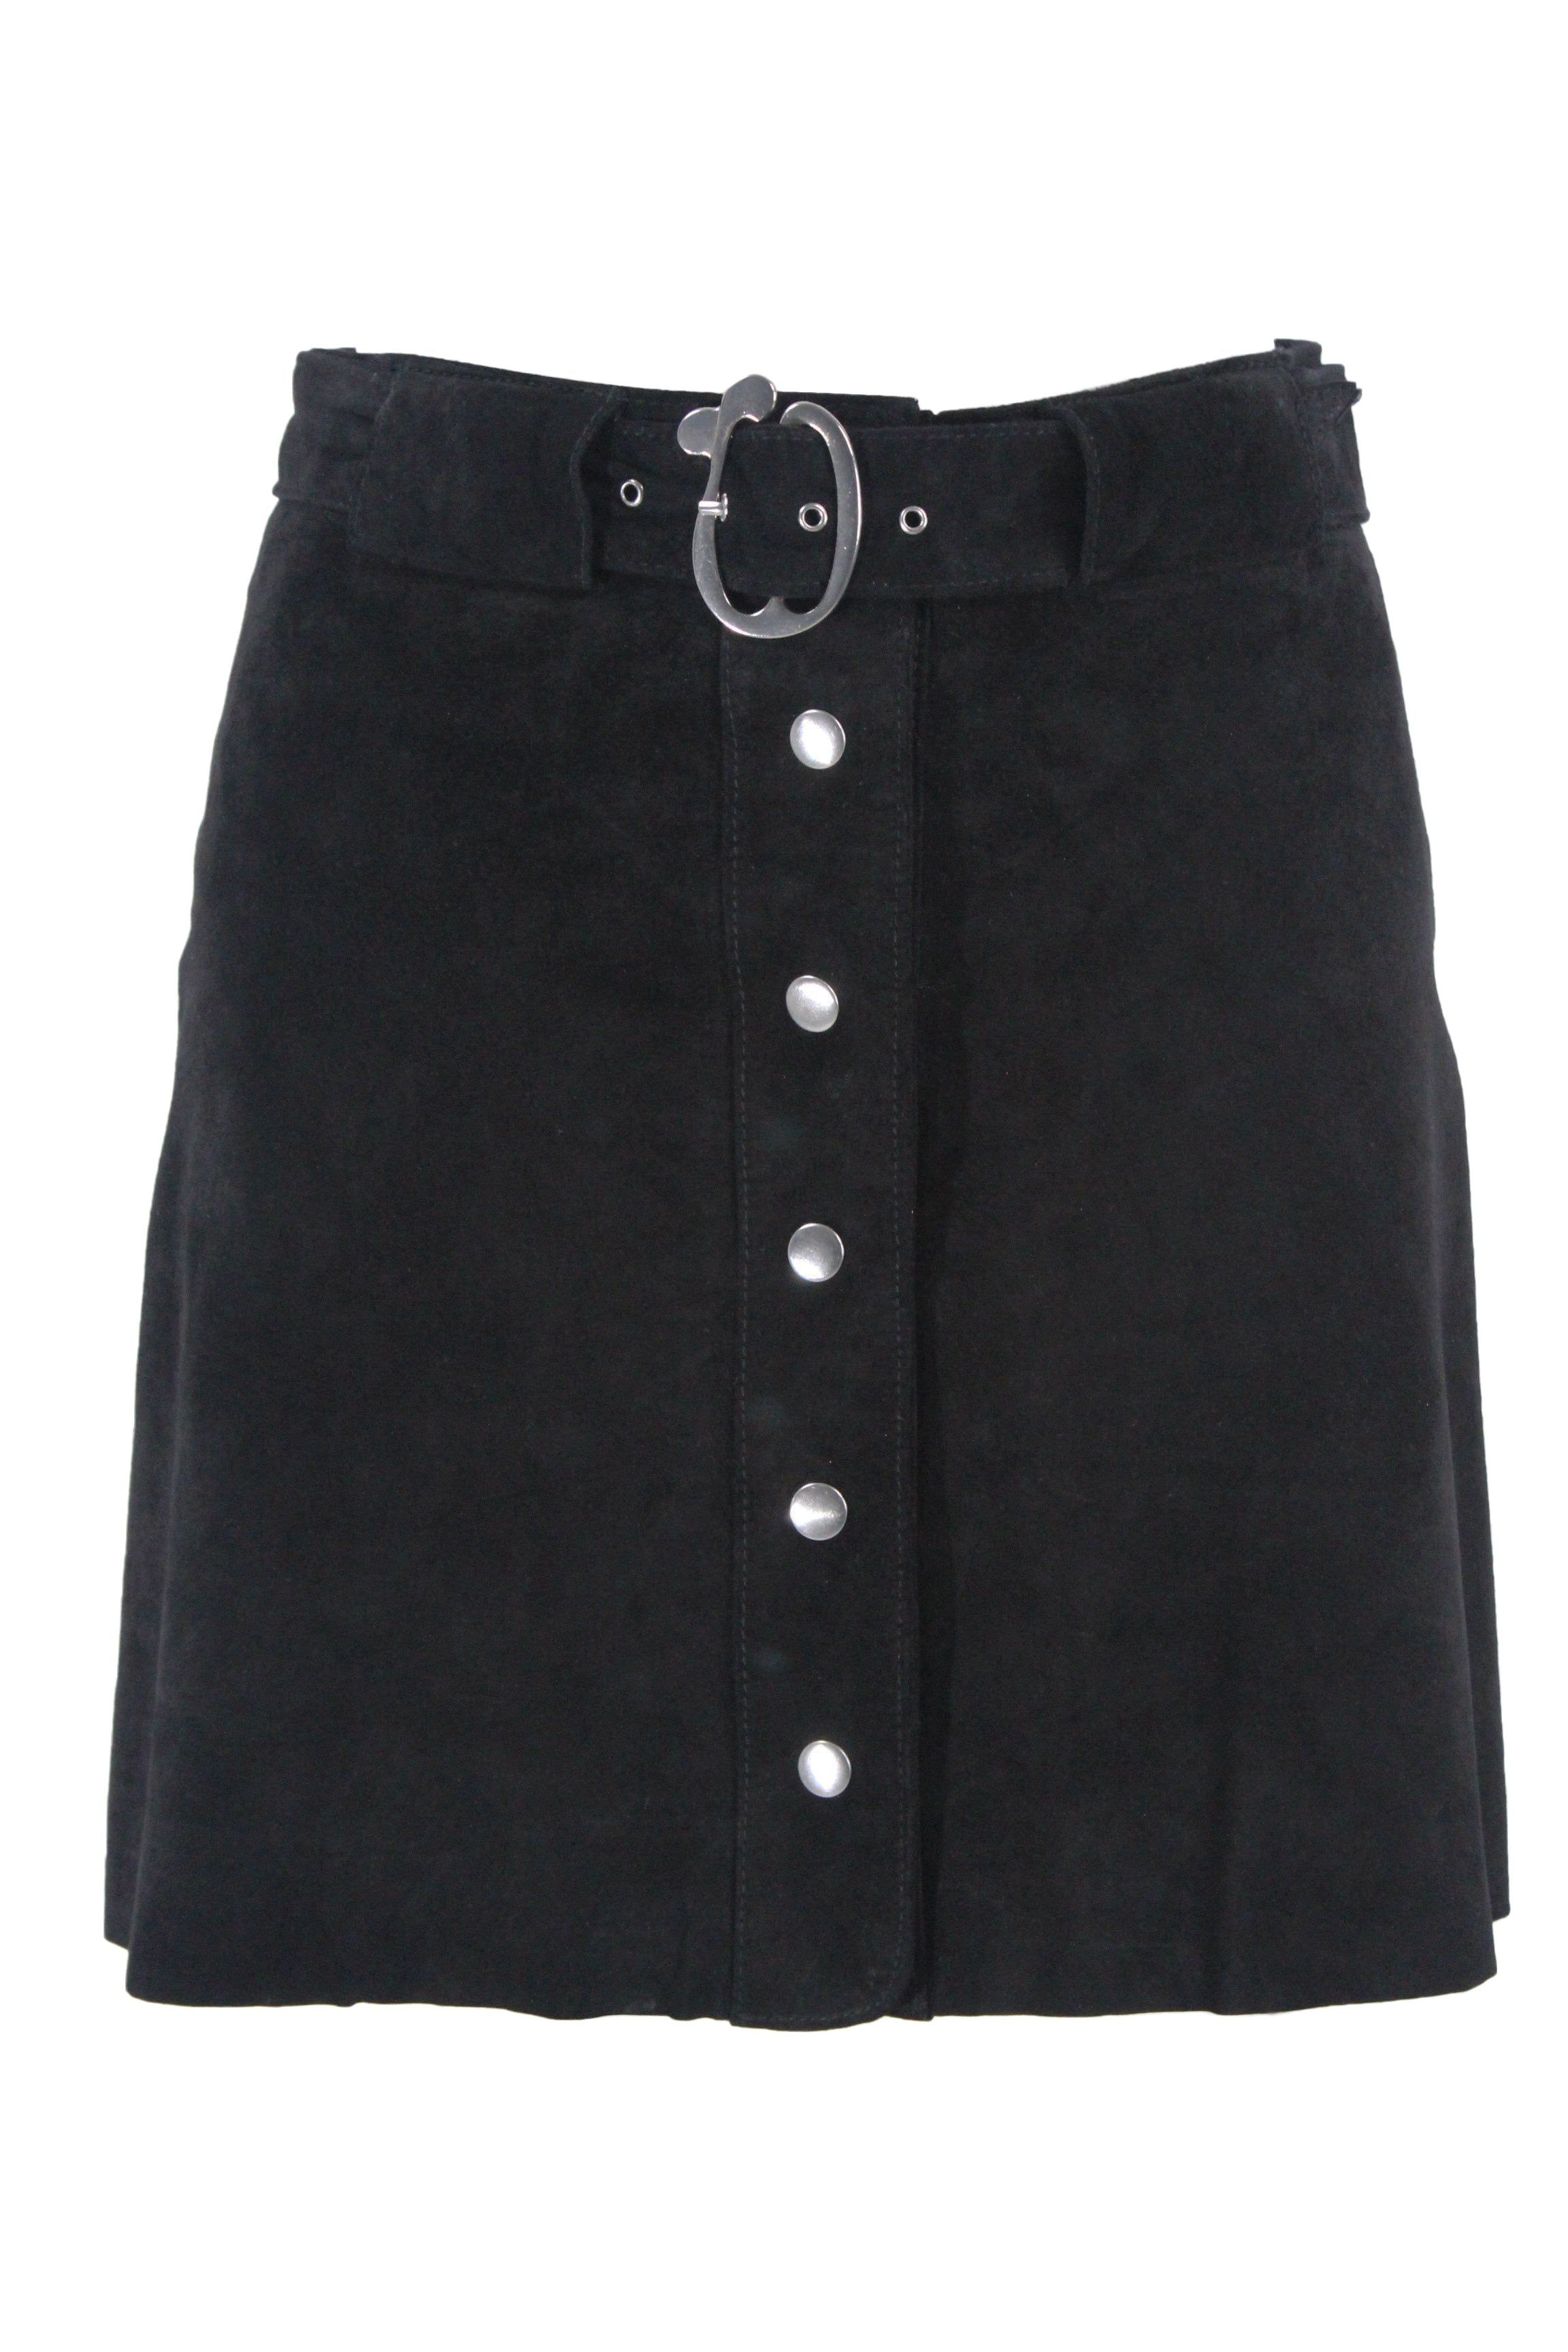 zara black suede mini skirt. features black suede exterior, silver tone button closures along front center, tonal belt with silver tone hardware and buckle and tonal interior lining.